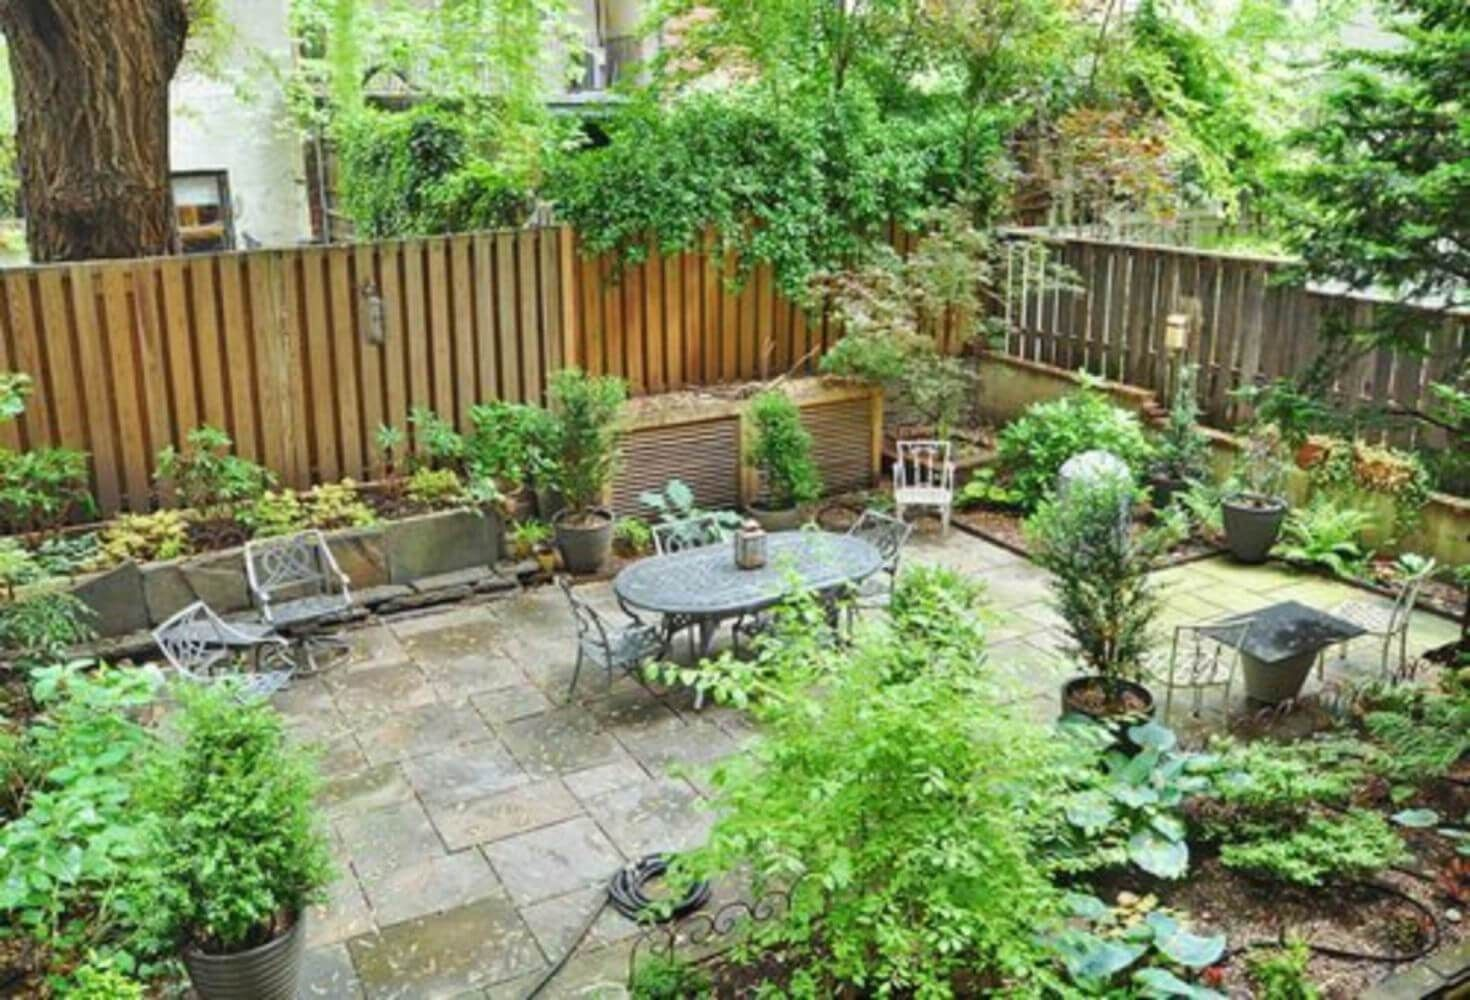 44+ Best Landscaping Design Ideas Without Grass 2020 | No ... on Small Garden Ideas No Grass  id=78156